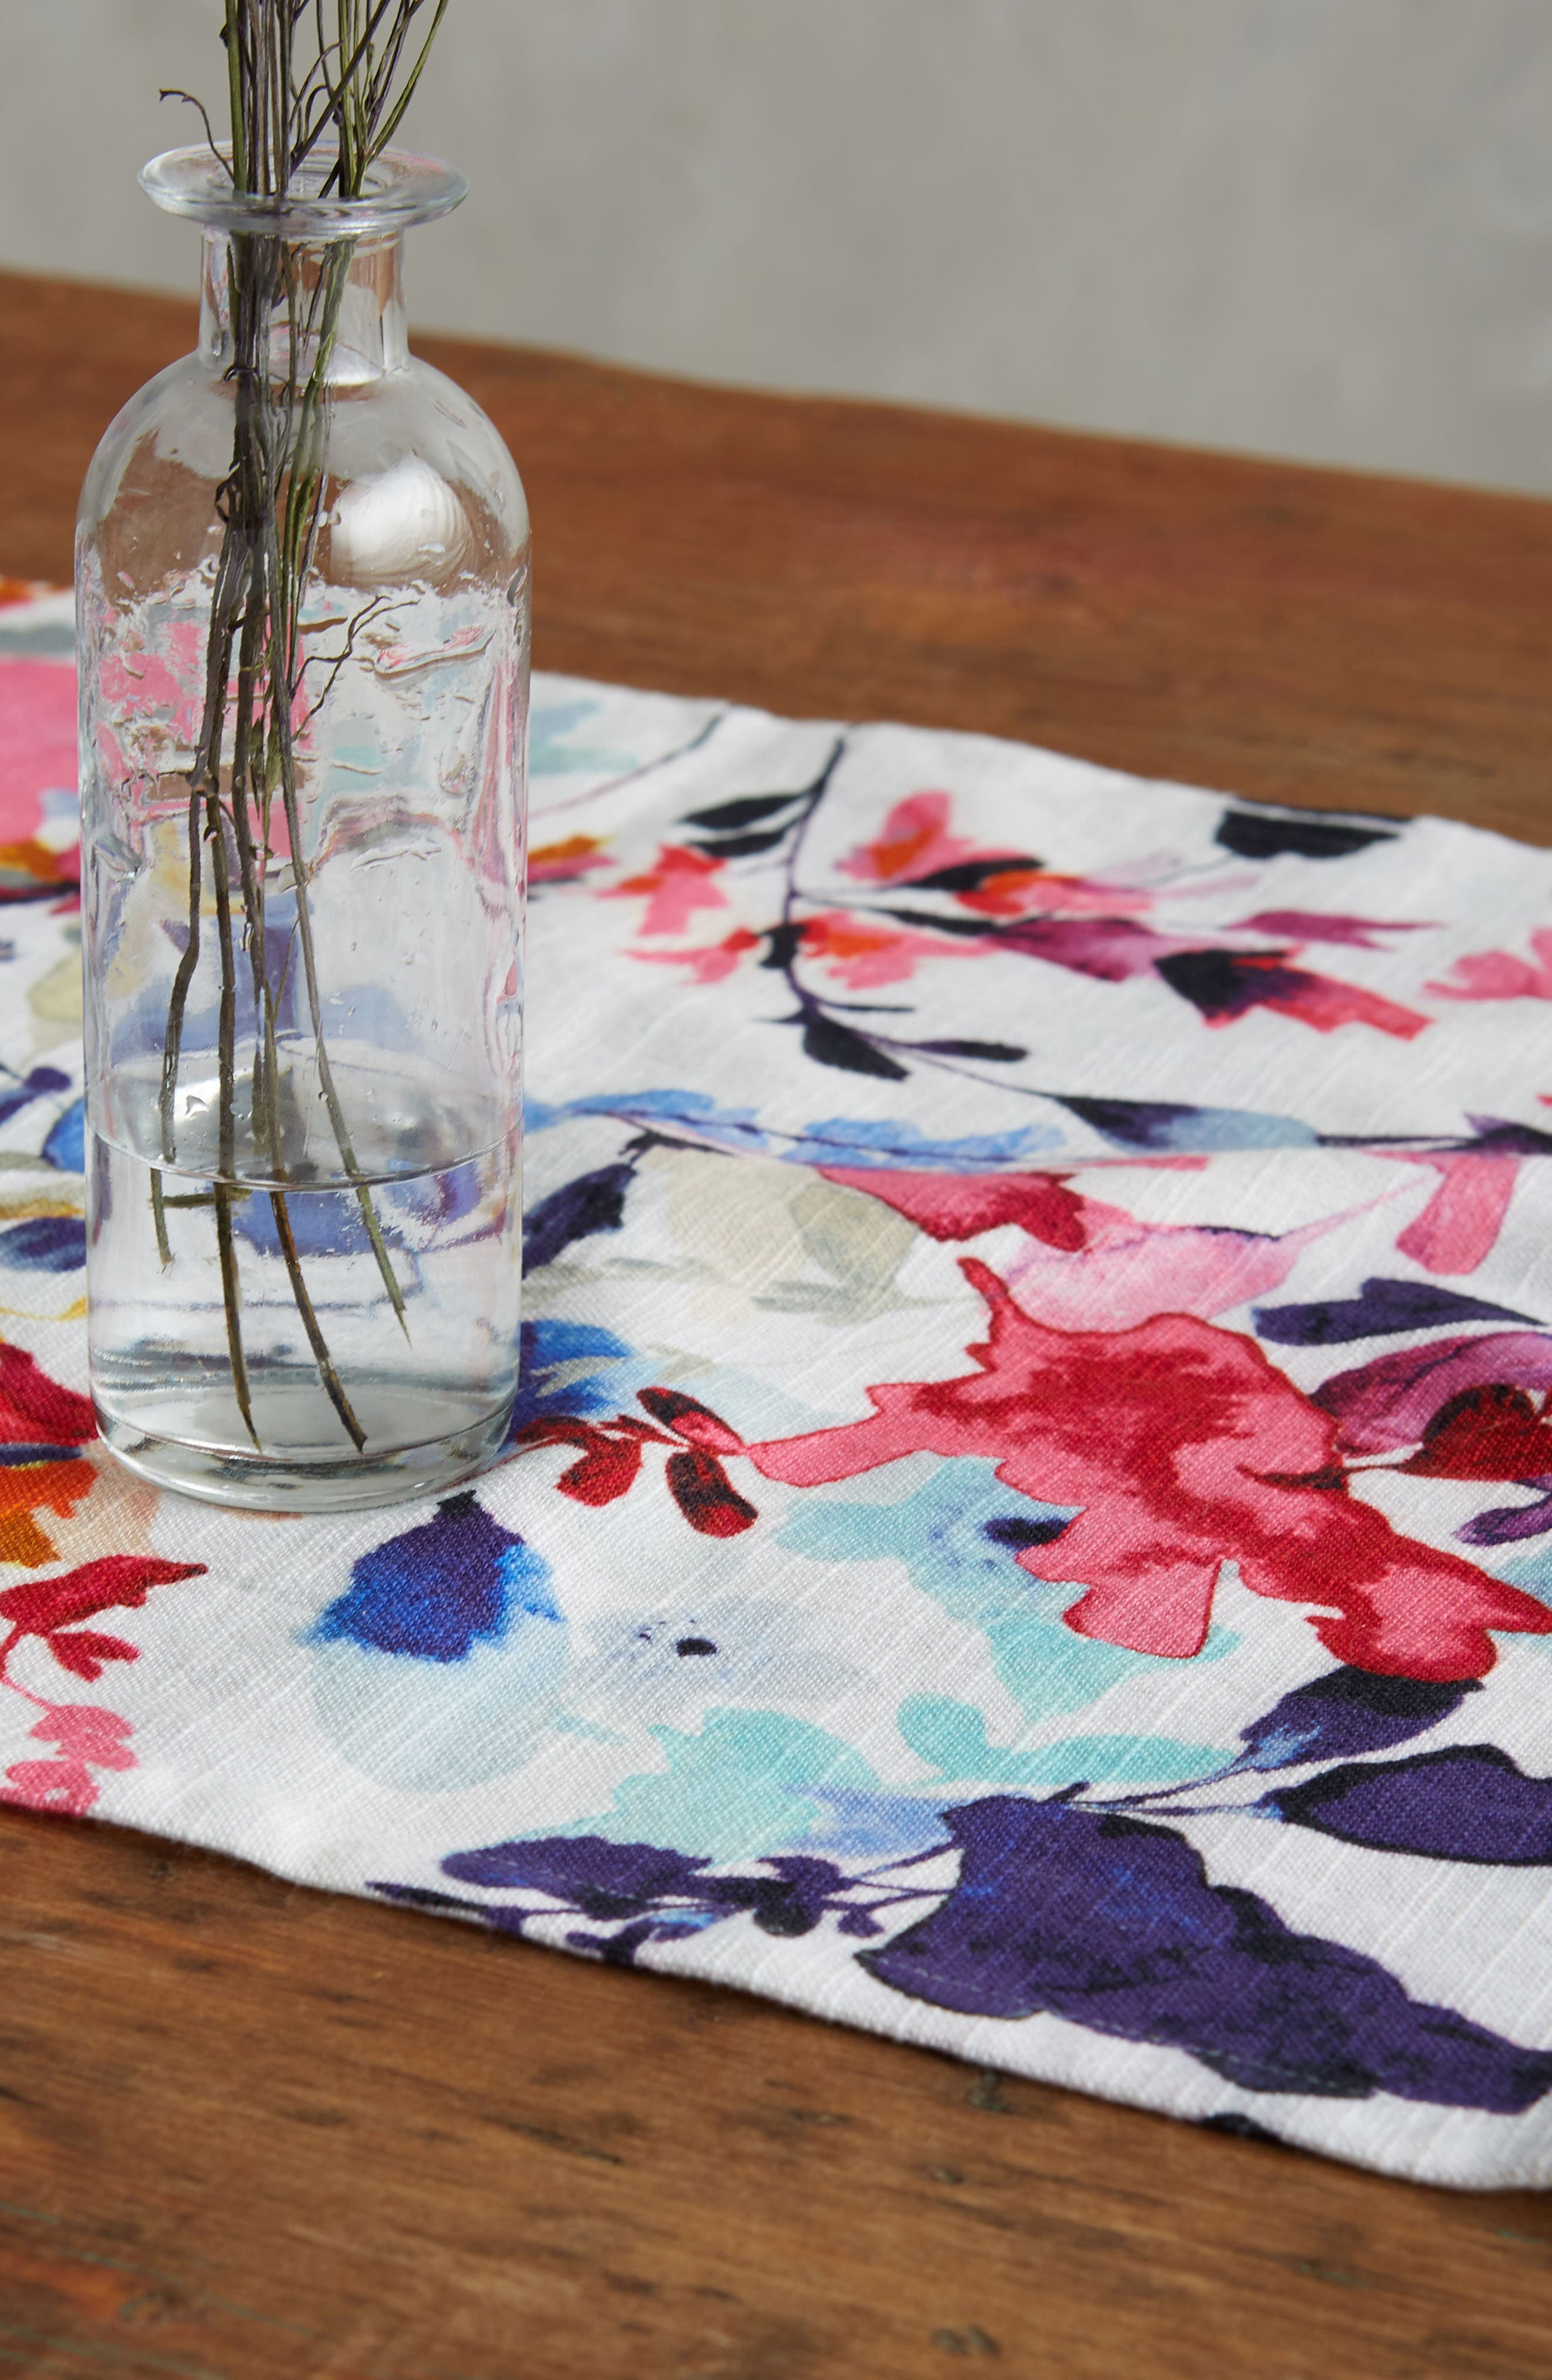 Wildflower Study Table Runner,                             Alternate thumbnail 2, color,                             Pink Multi